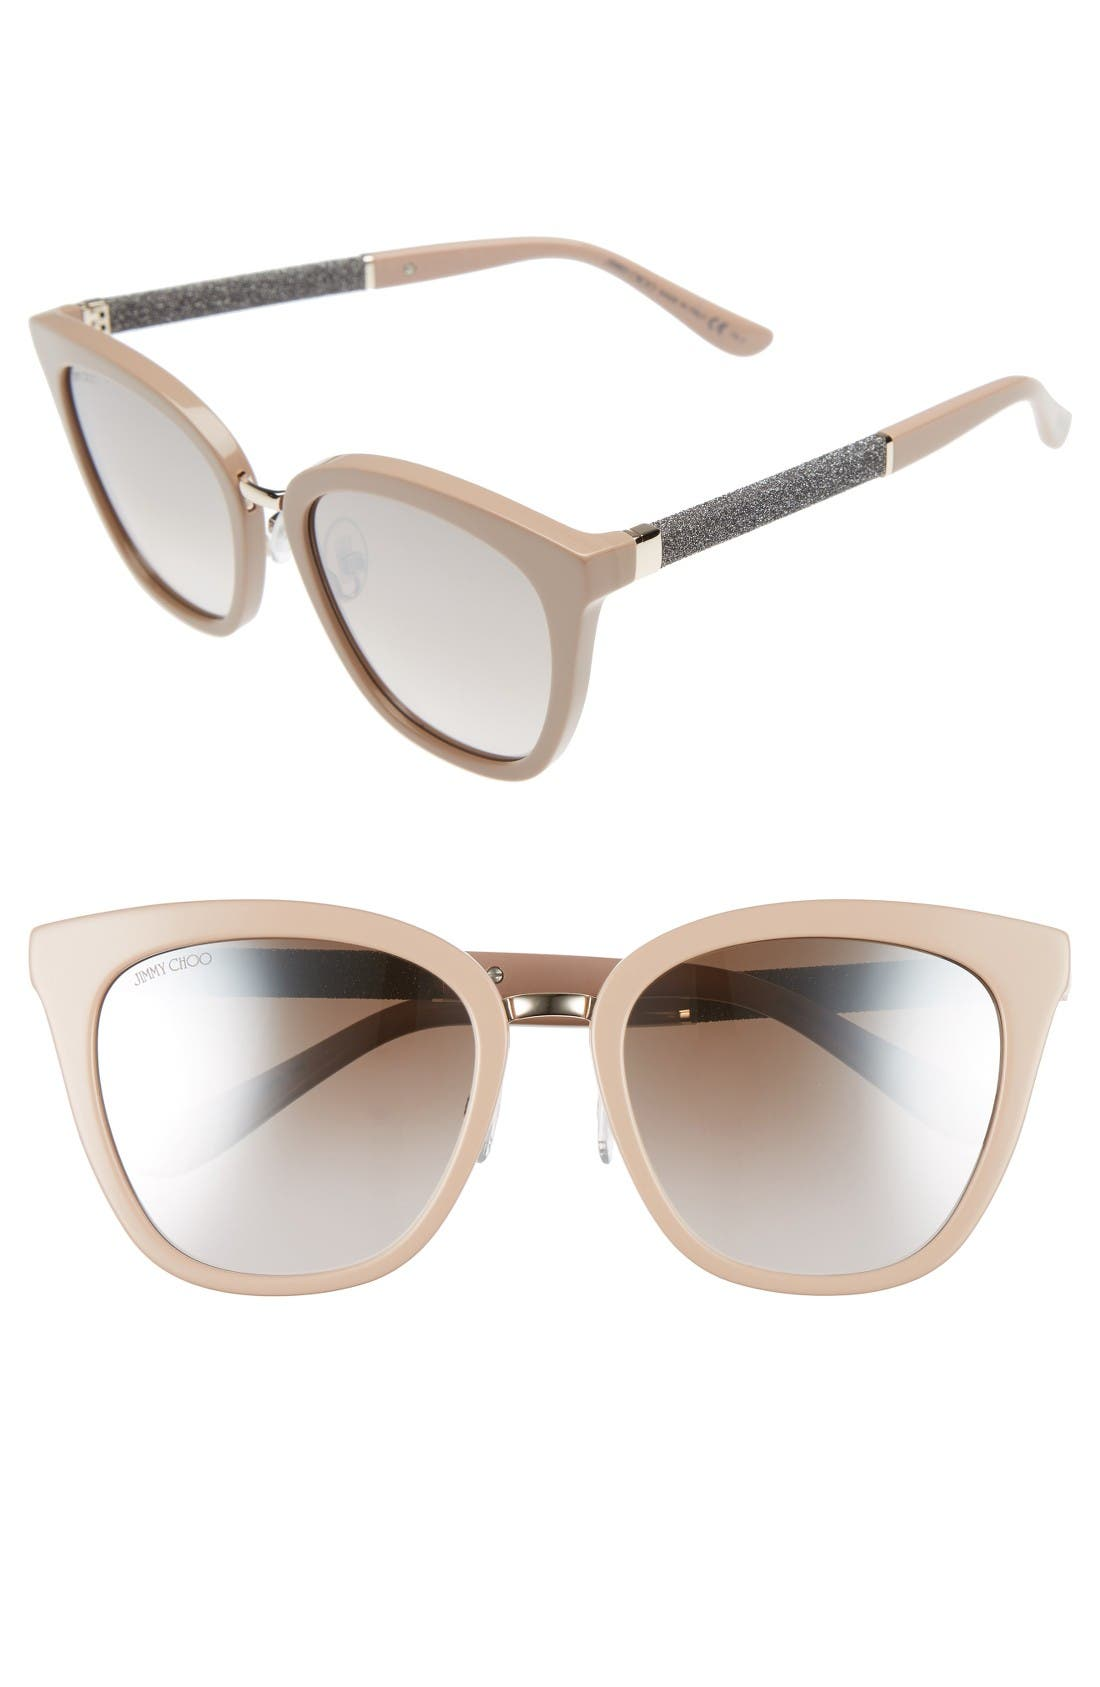 Jimmy Choo Fabry 53mm Sunglasses